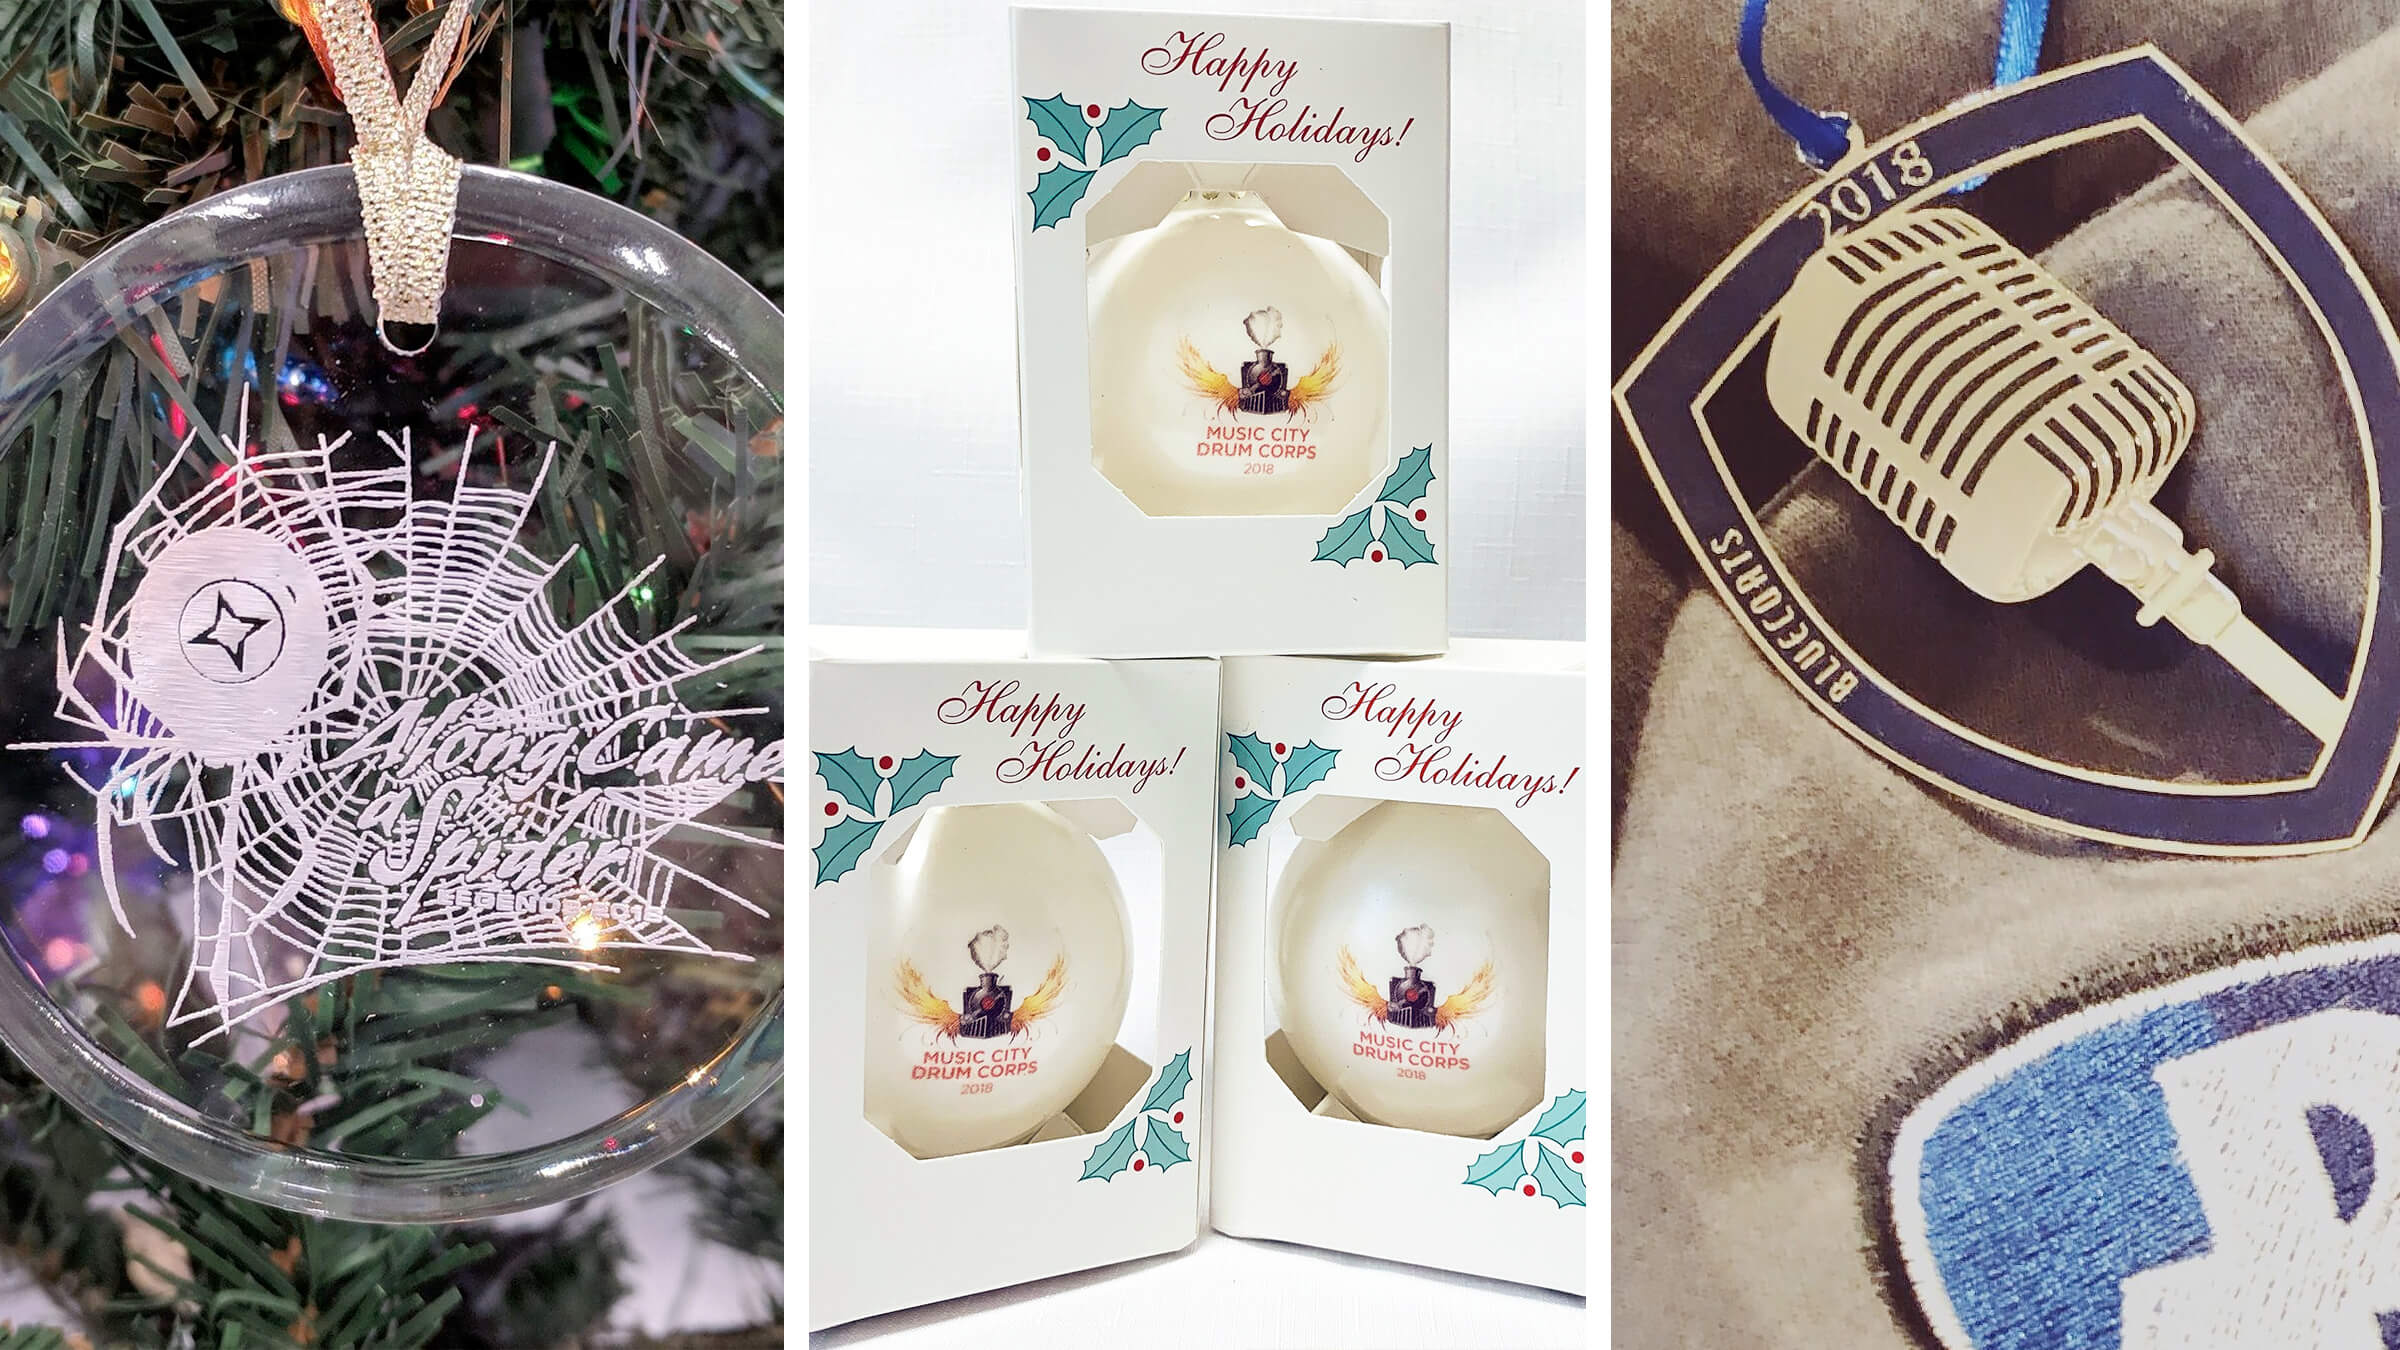 Trim your Christmas tree with drum corps accoutrements